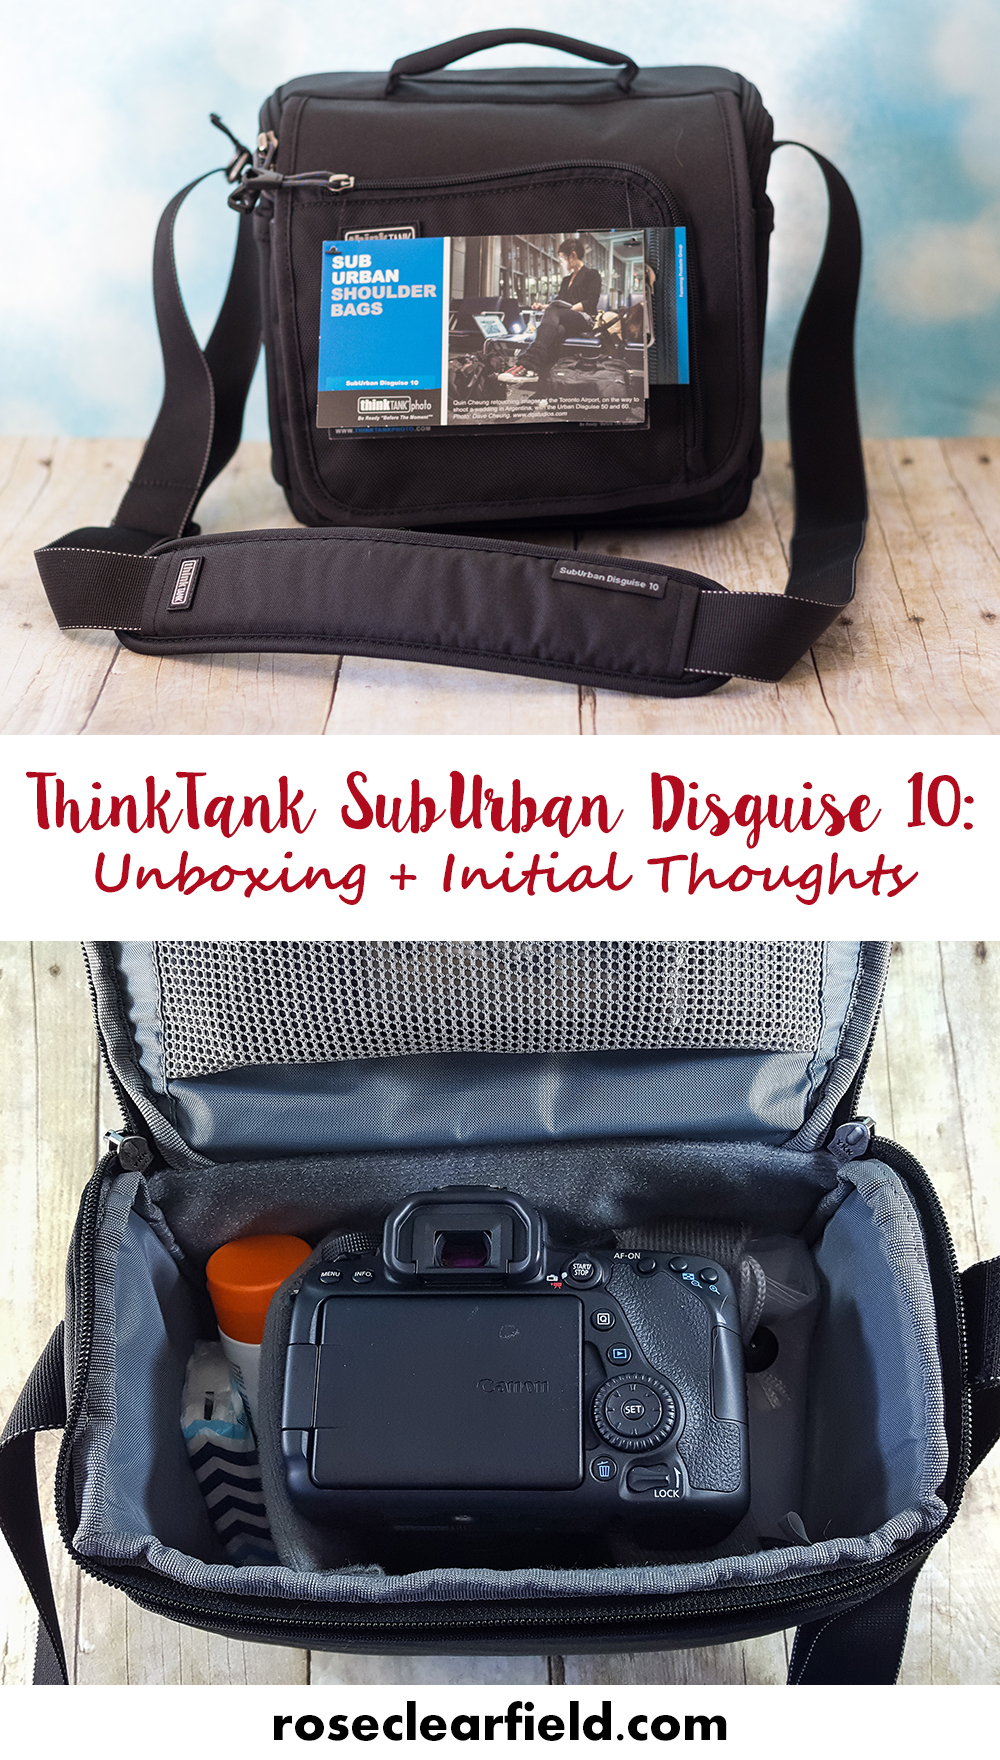 ThinkTank SubUrban Disguise Unboxing + Initial Thoughts | https://www.roseclearfield.com